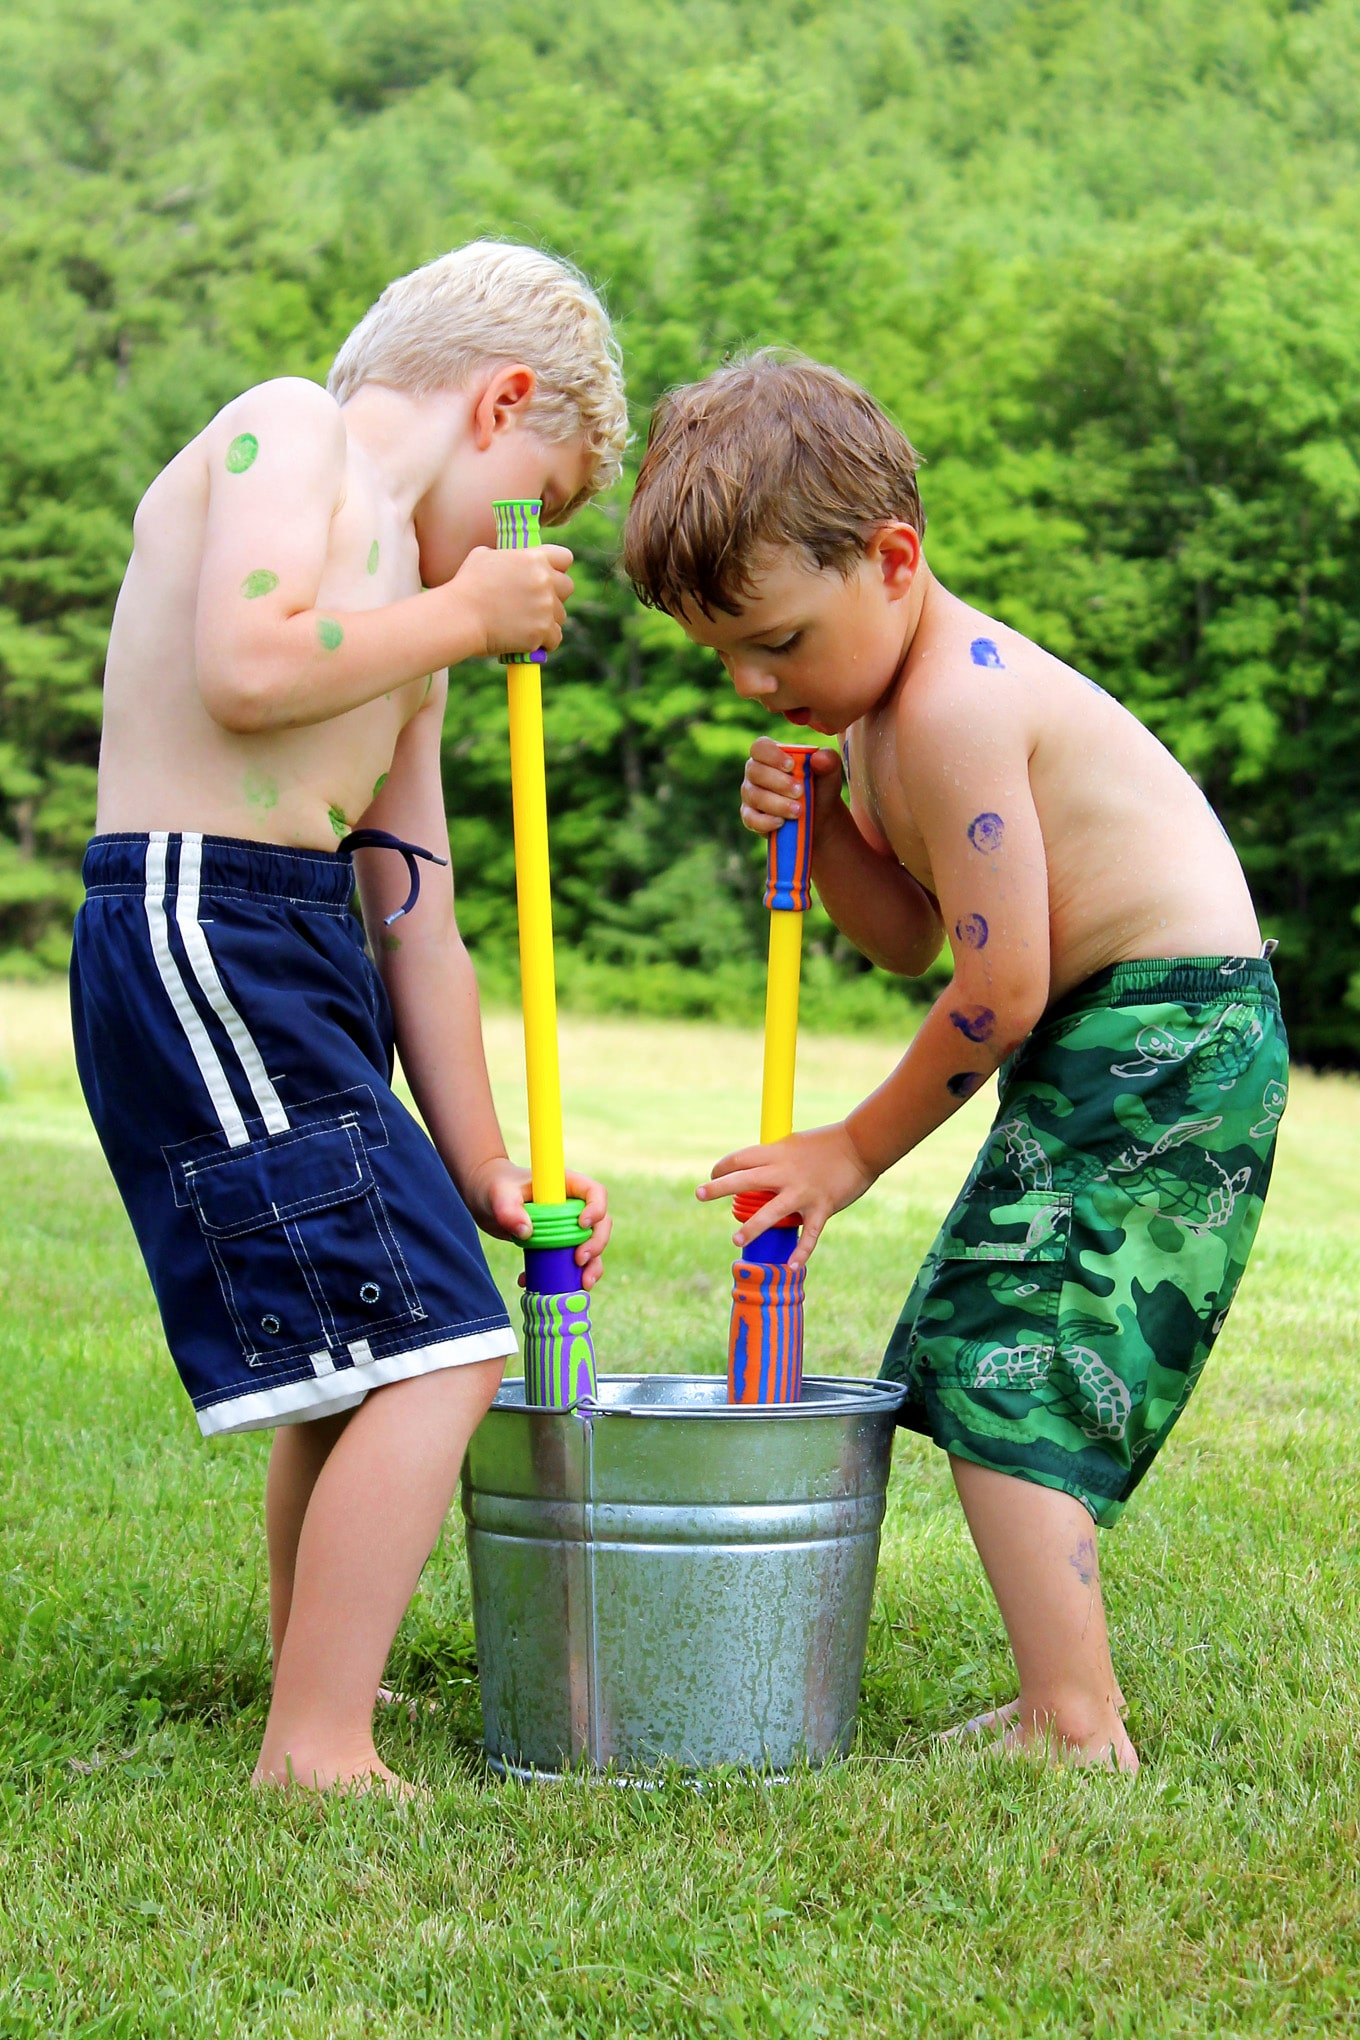 Two Children Playing with Water Blasters